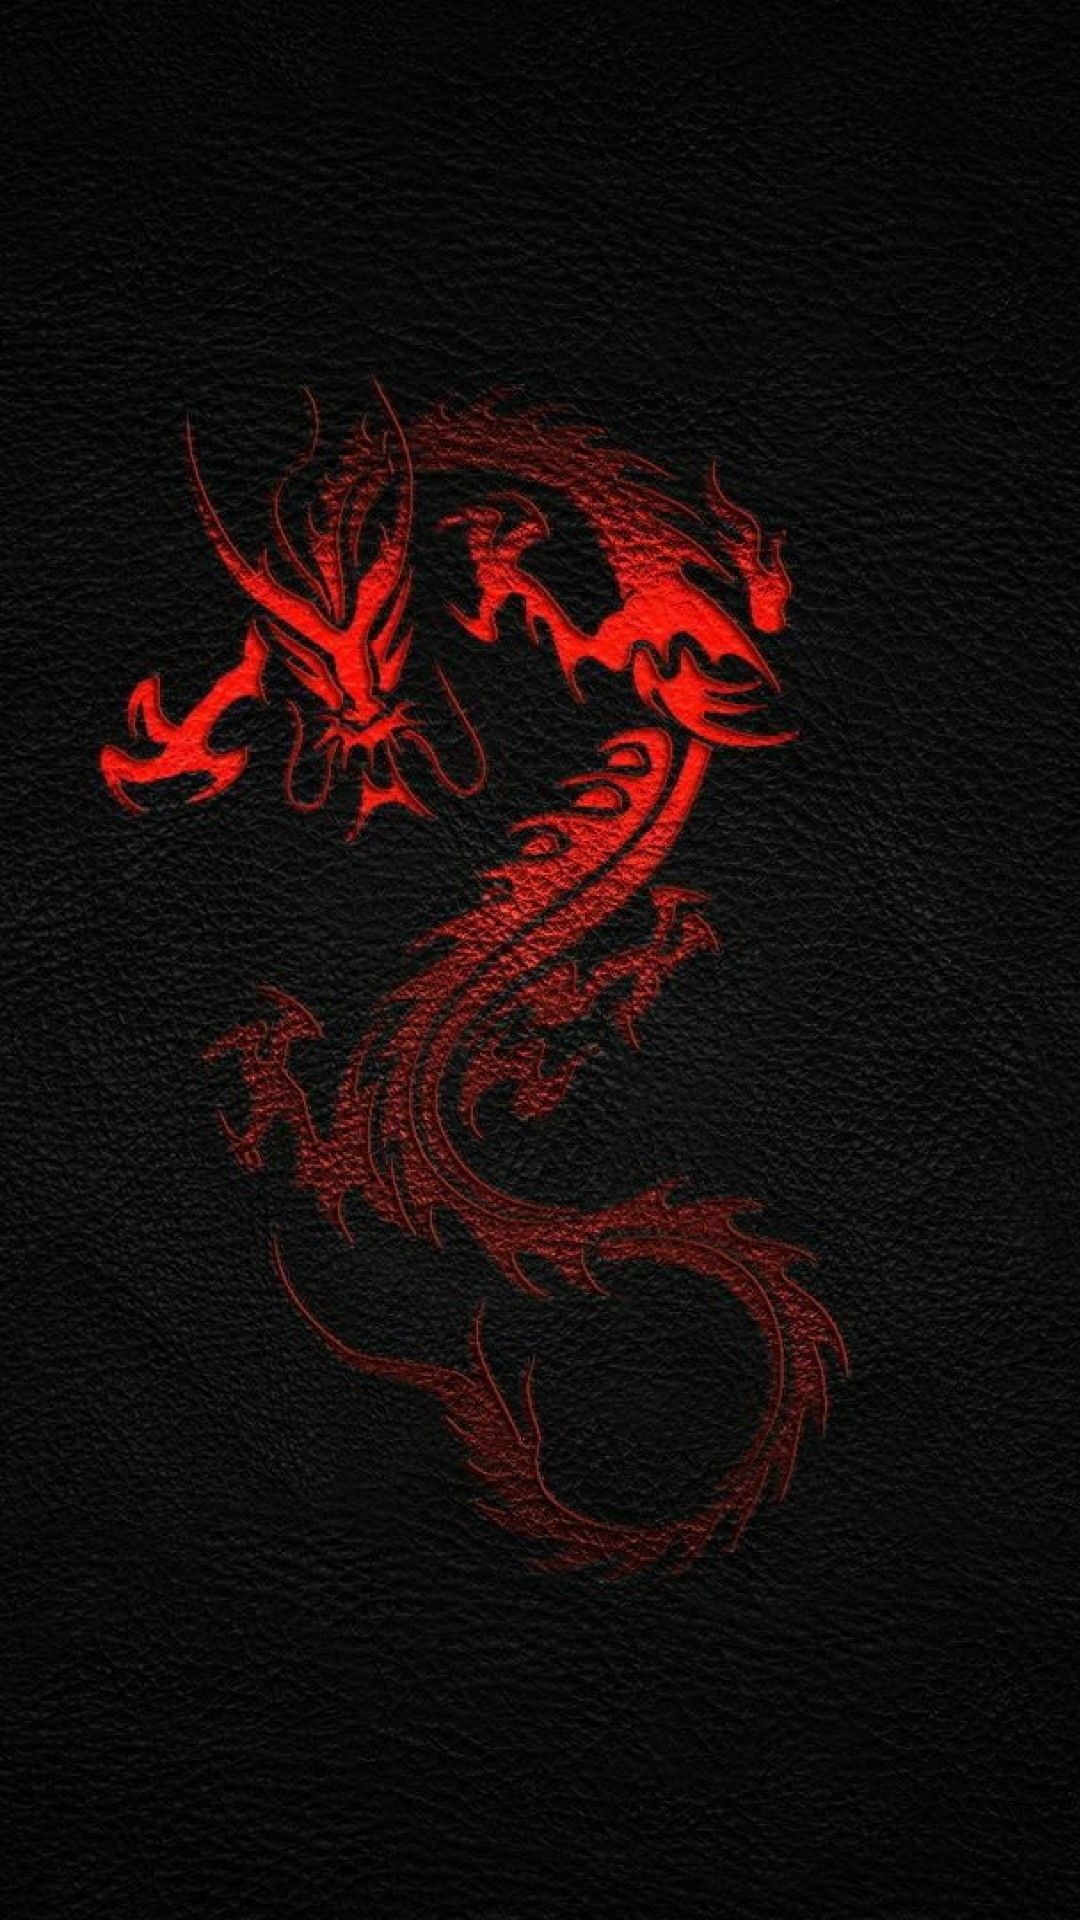 Black And Red Wallpaper Iphone Artistic Joyful